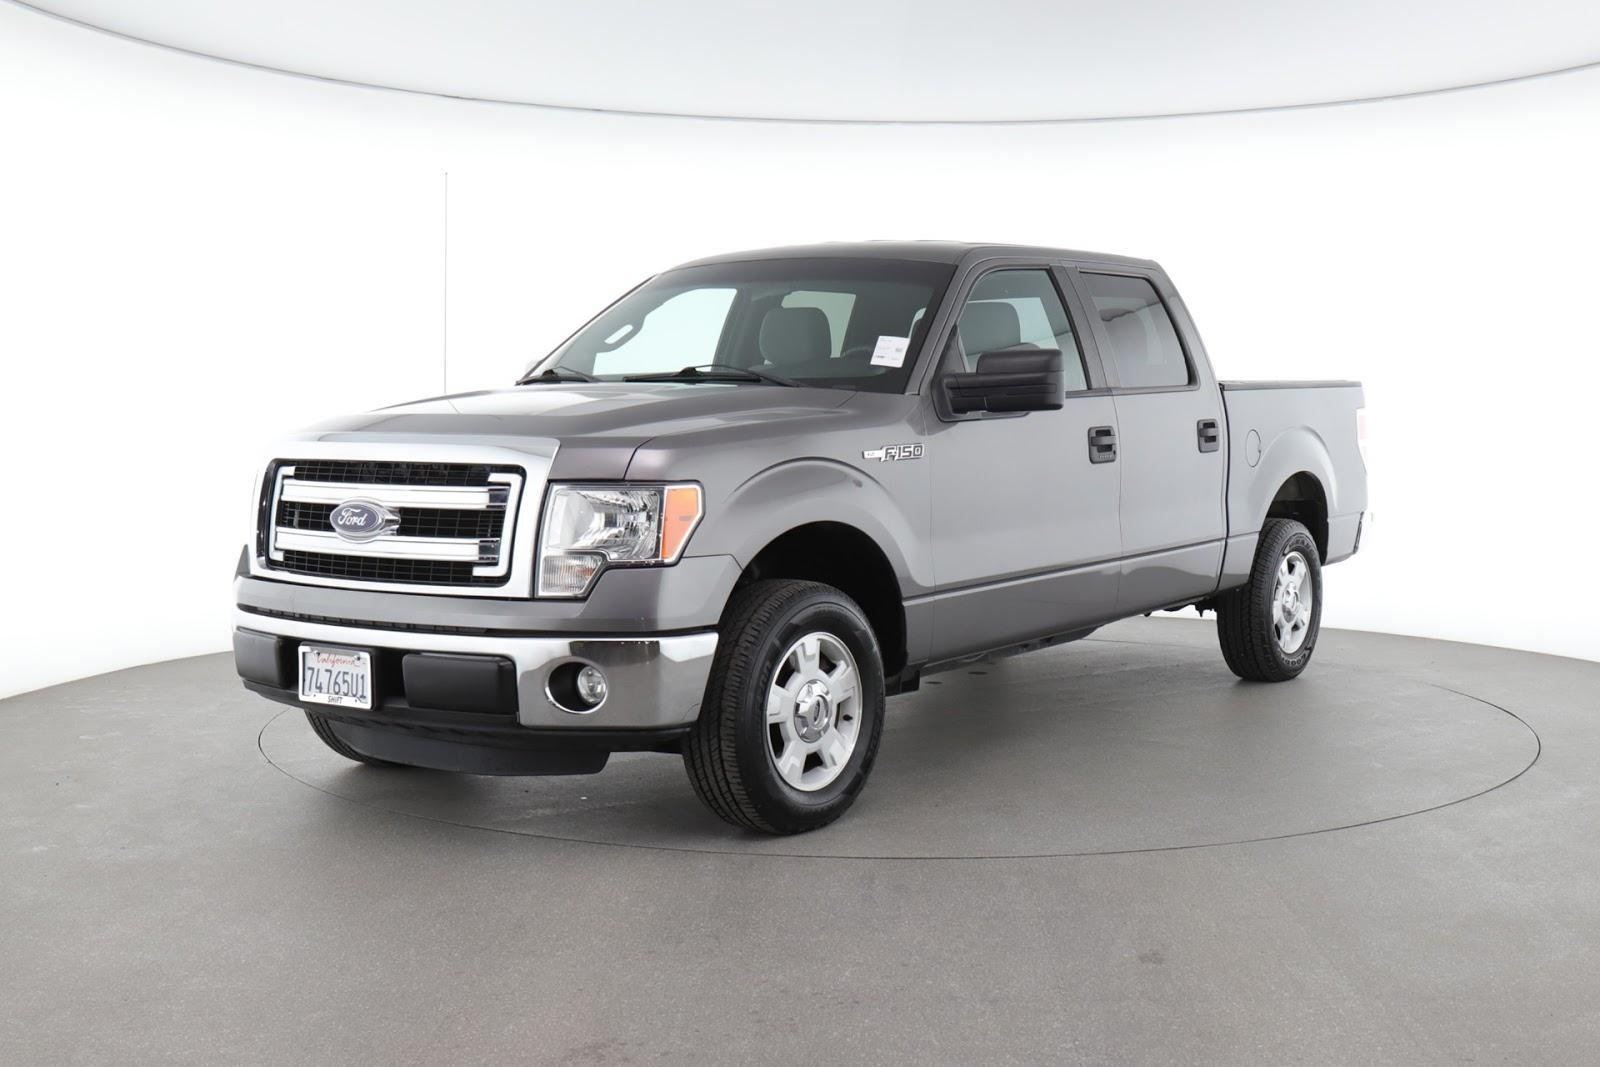 2014 Ford F-150 XLT (from $17,600)